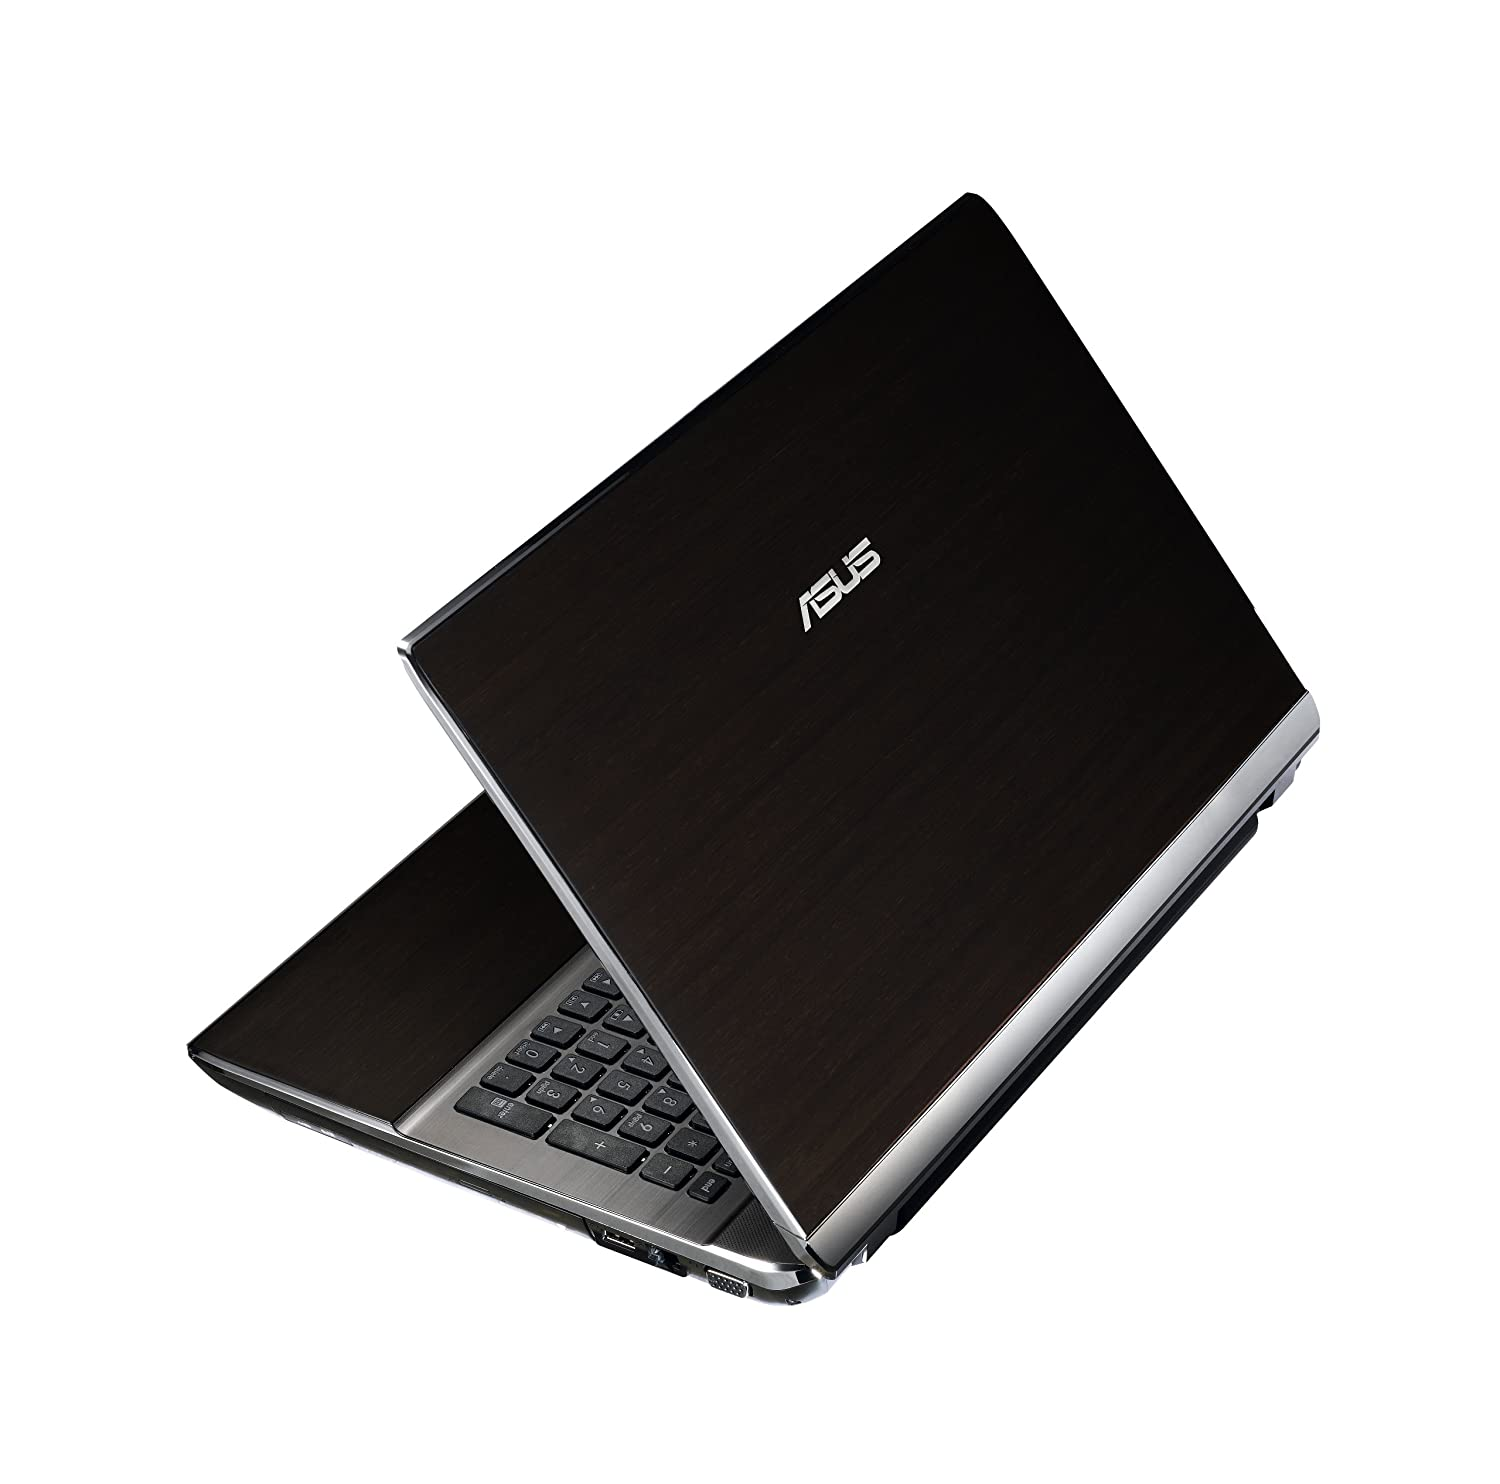 ASUS U53JC NOTEBOOK MANAGEMENT DRIVERS FOR MAC DOWNLOAD